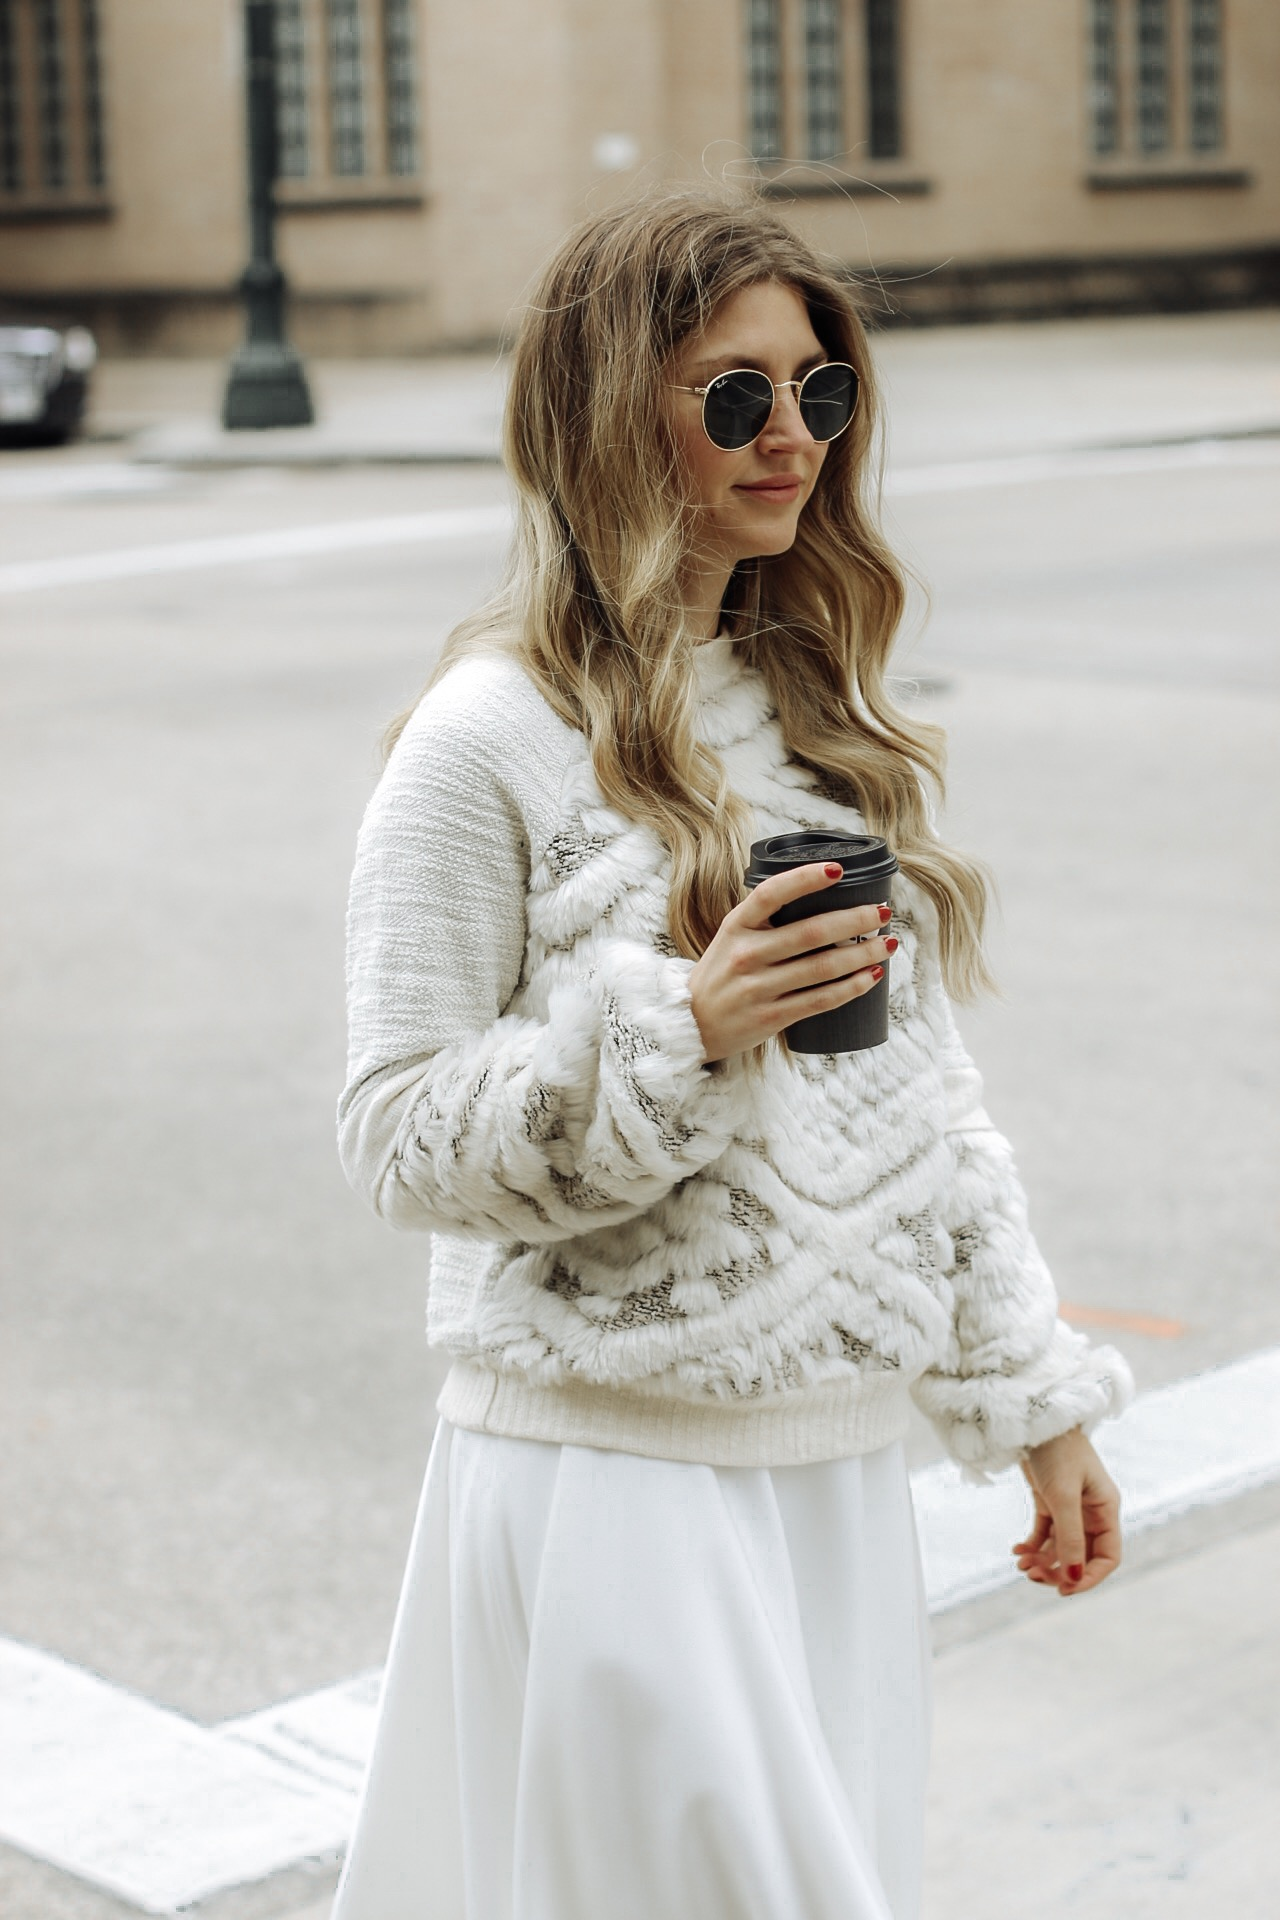 AshLee Frazier in Anthropologie sweater with coffee in hand